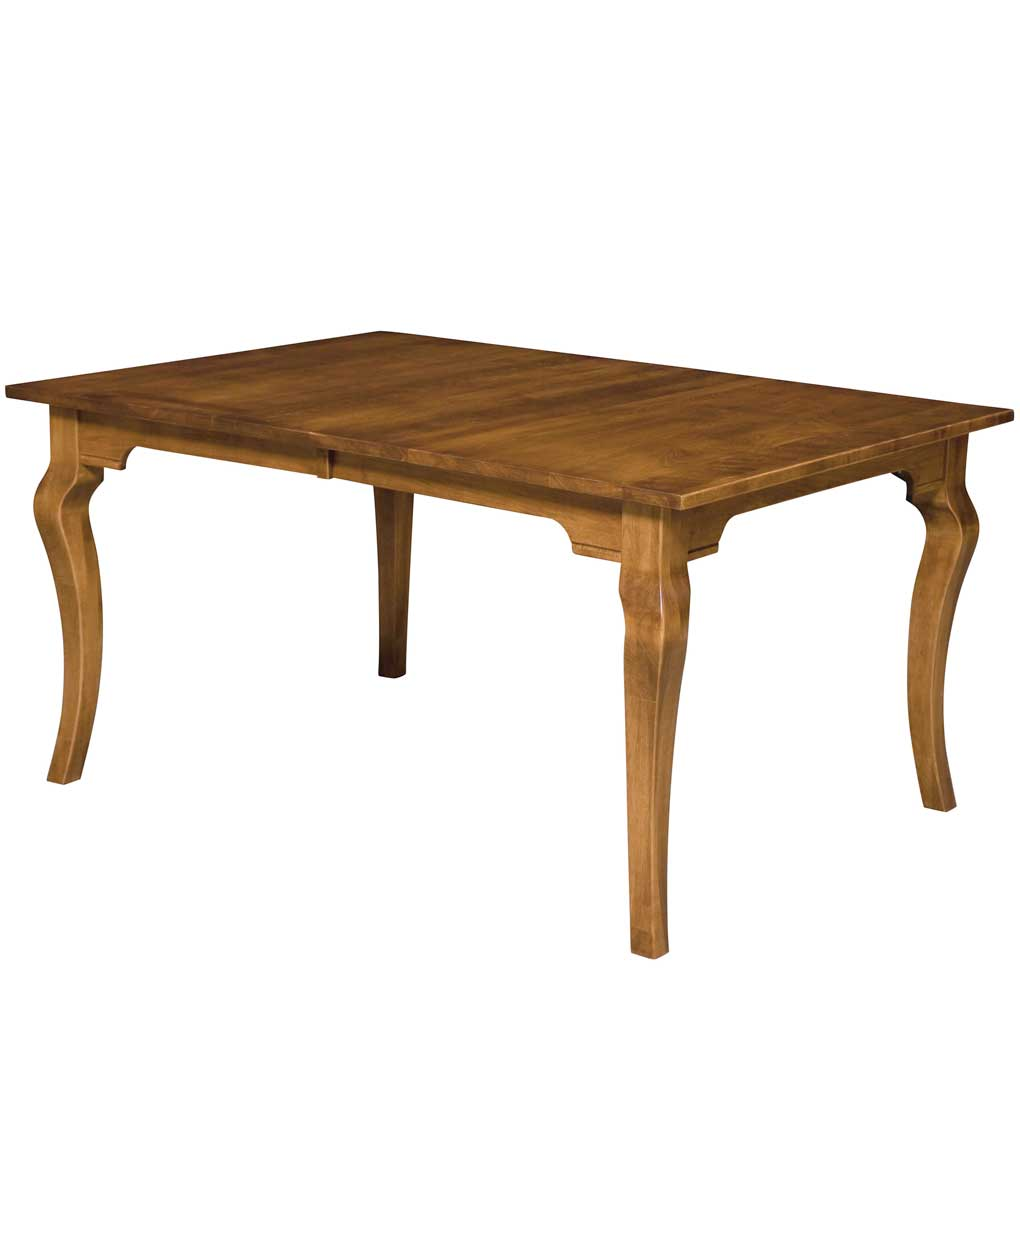 Granby dining table amish direct furniture for Single leg dining table